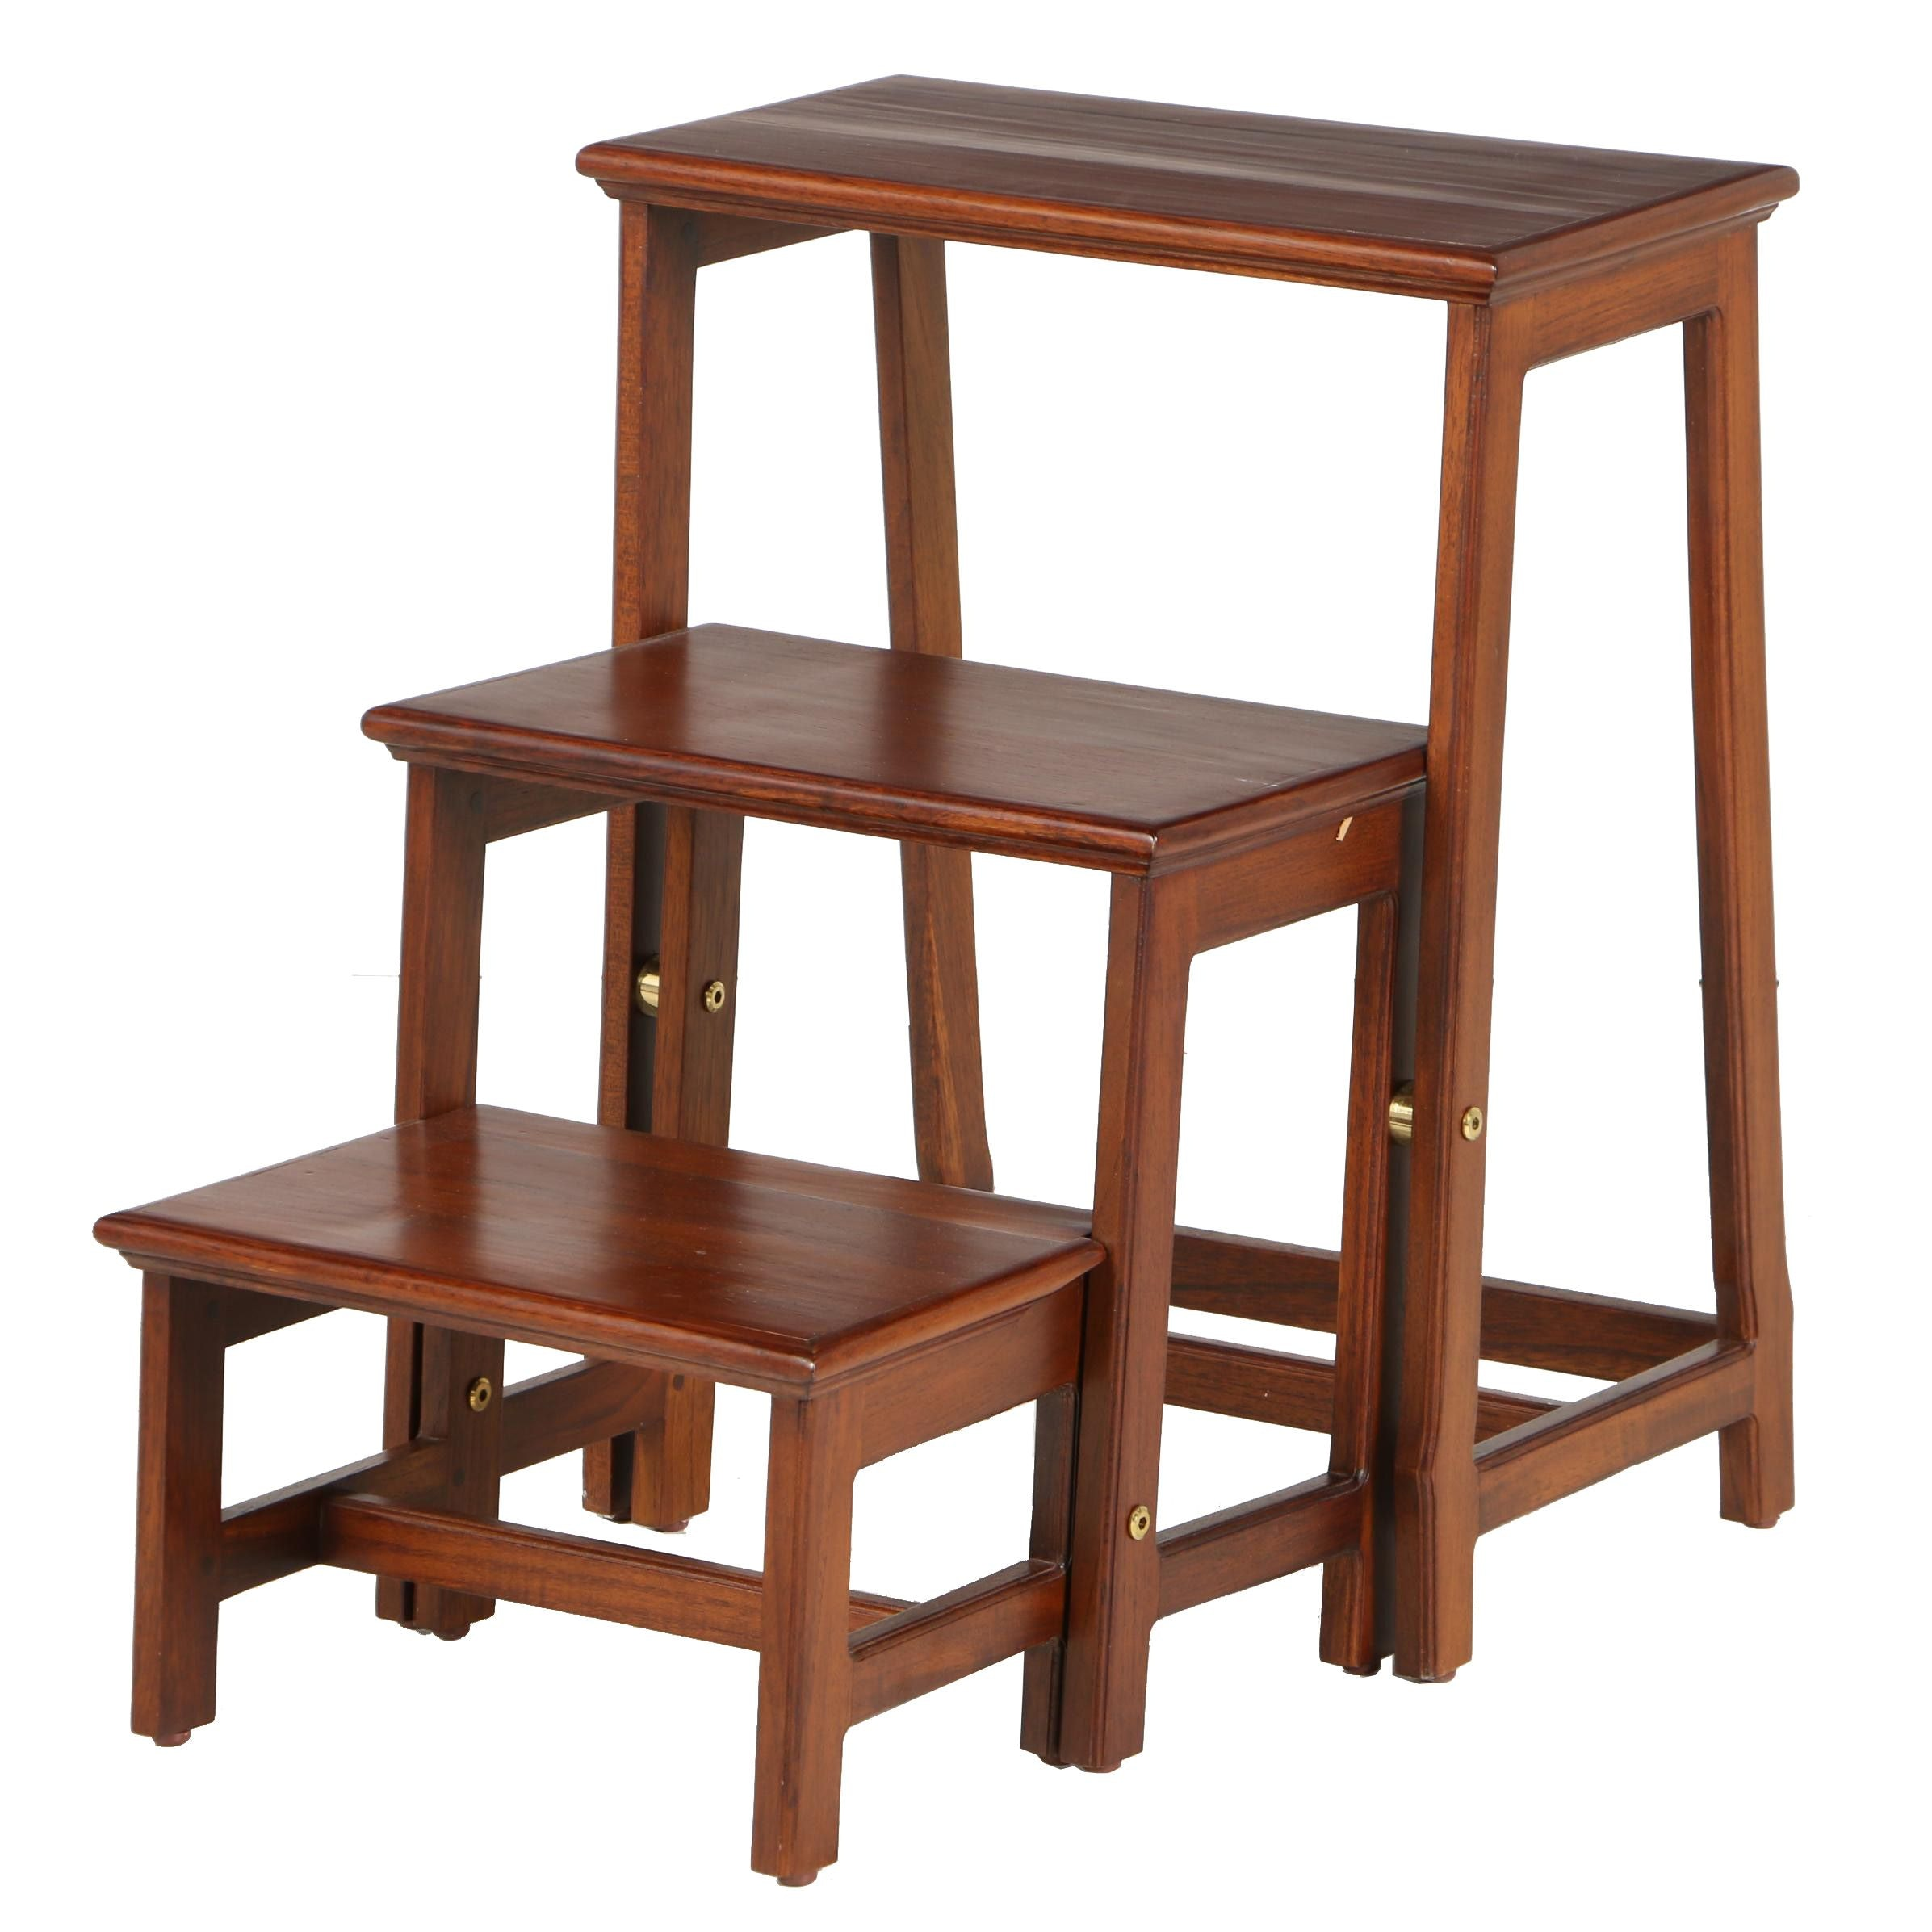 Contemporary Teak Folding Library Steps by Frontgate